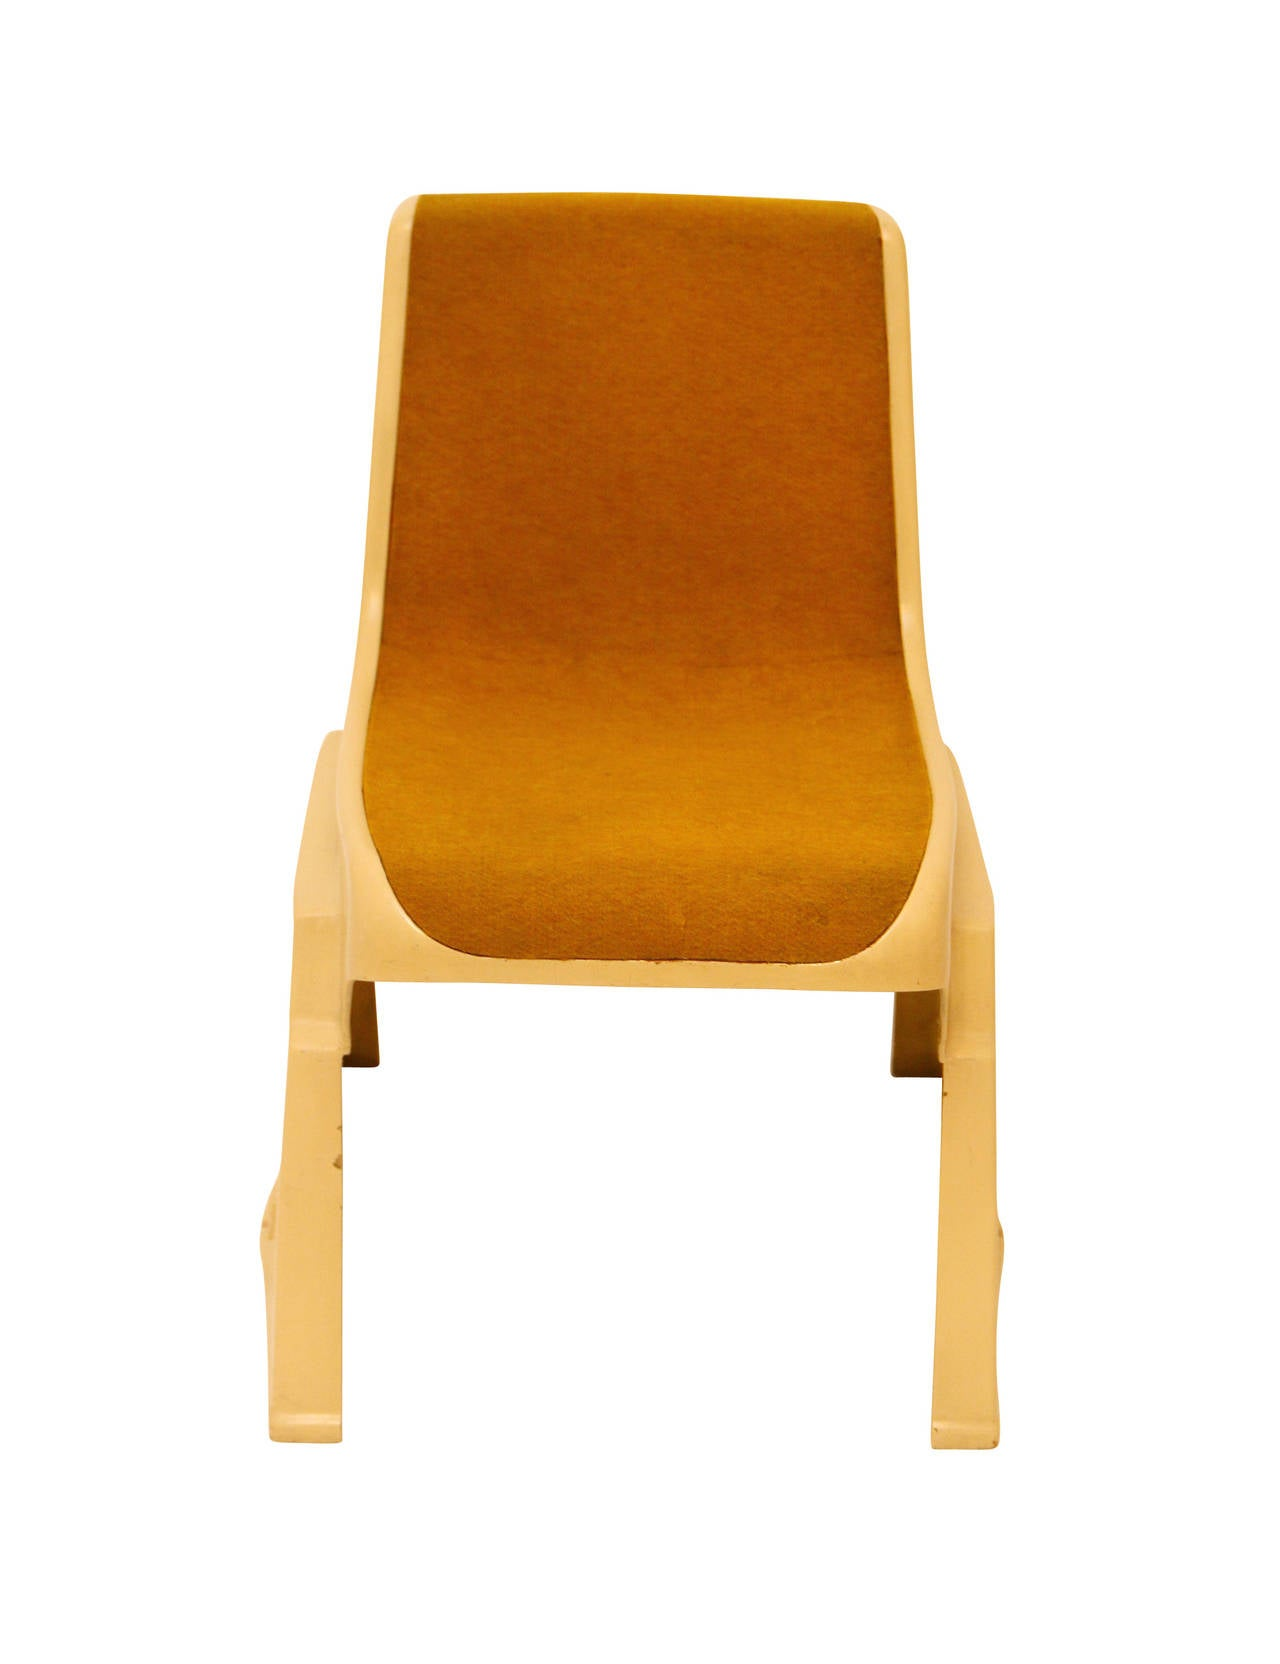 Fiberglass Up to 8 Very Rare Brutalist Austrian Stacking Chairs, 1970s For Sale